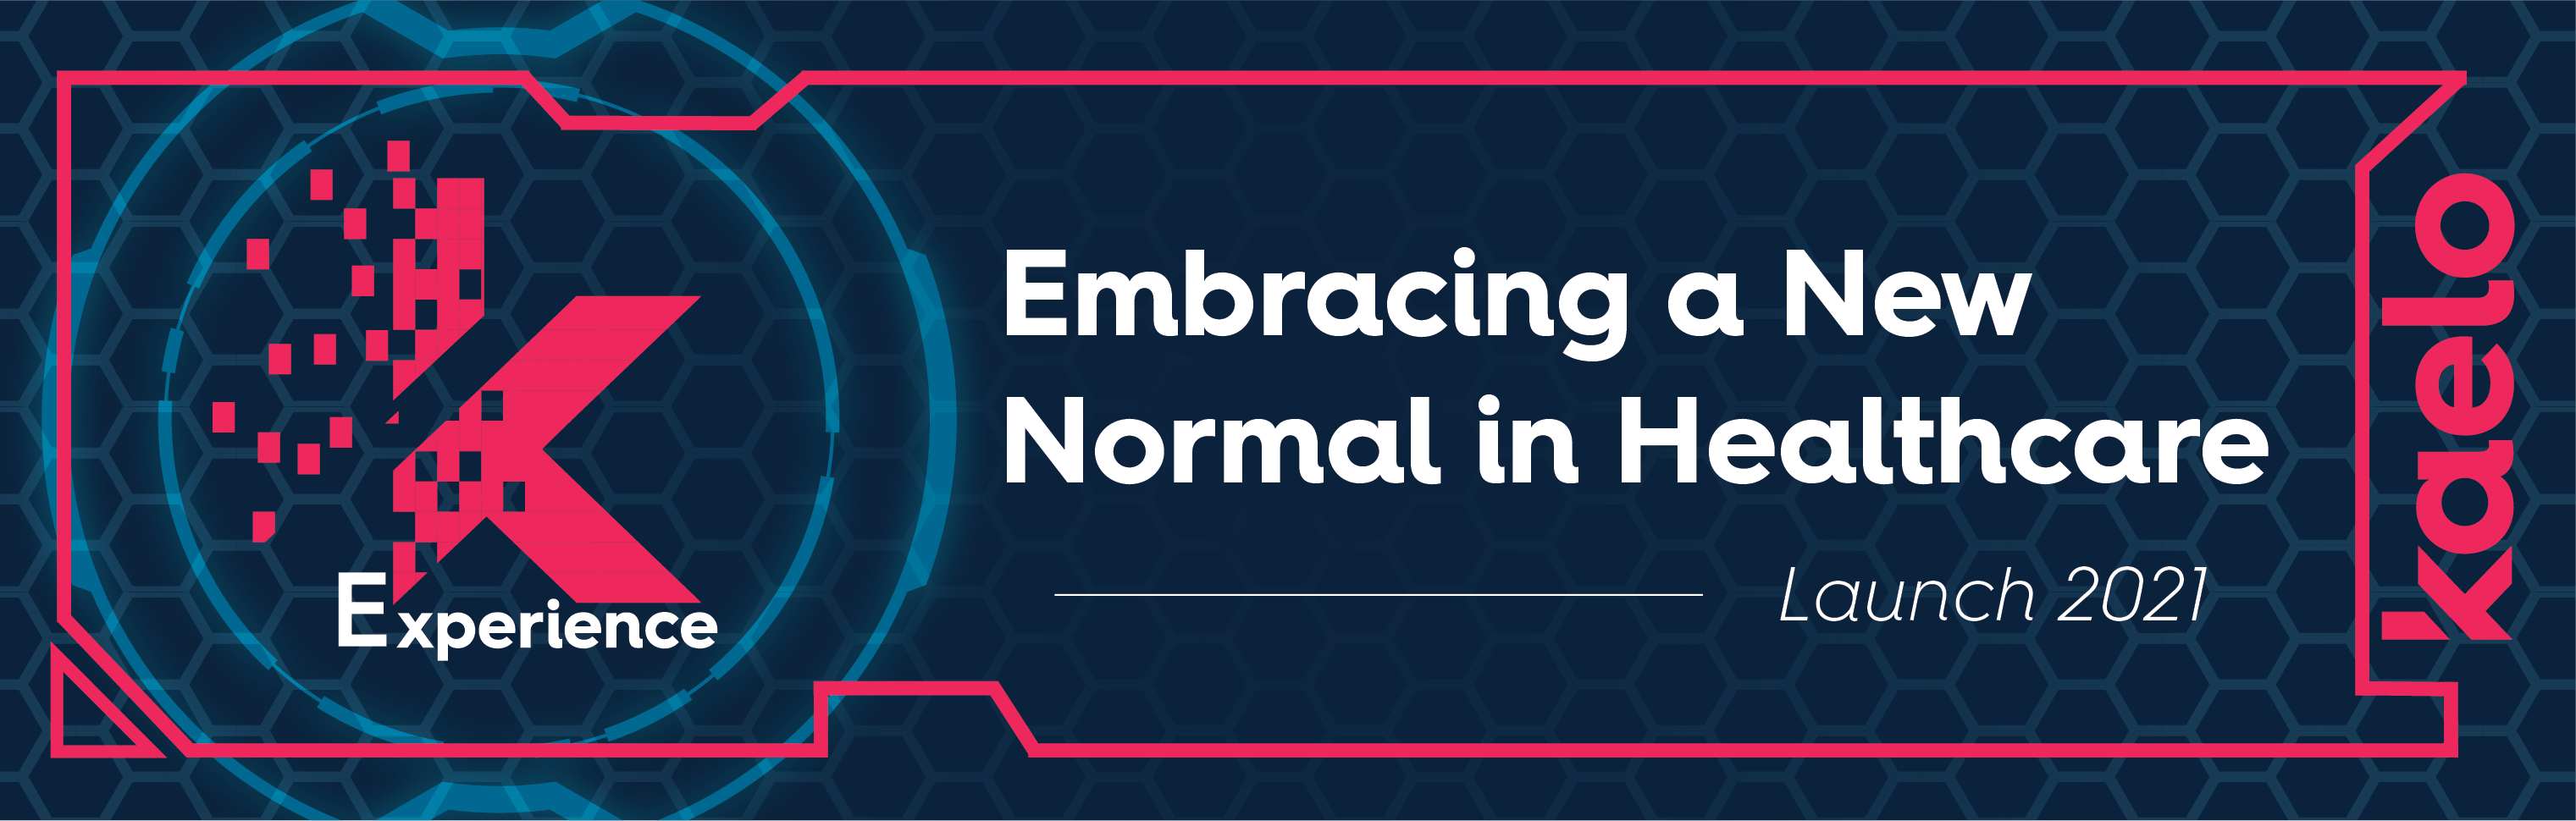 Embracing a new normal in healthcare